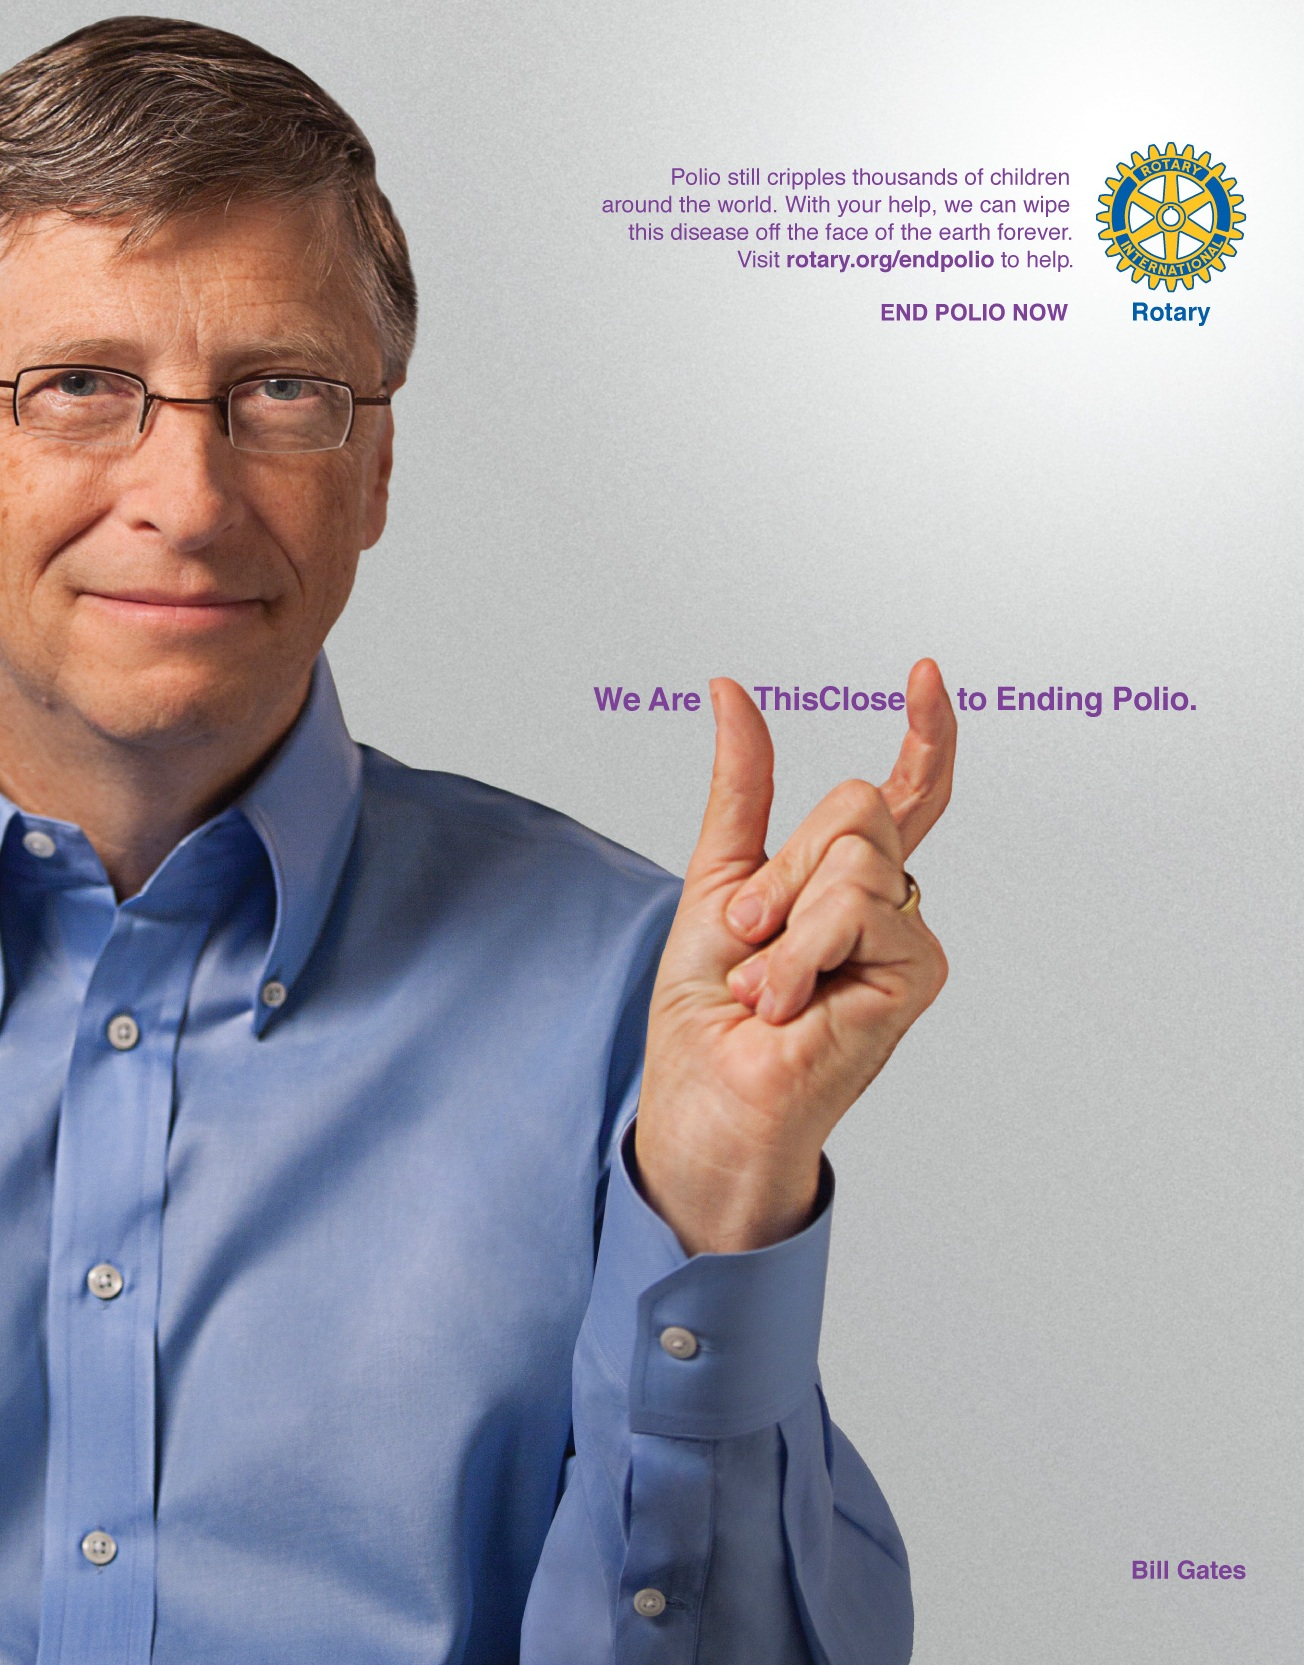 "Bill Gates leads a list of international public figures that are ""This Close"" to ending polio. Rotary is ""this close"" to achieving its goal of a polio-free world and more than 20 international and regional luminaries have signed on to help Rotary spread the word about polio eradication."